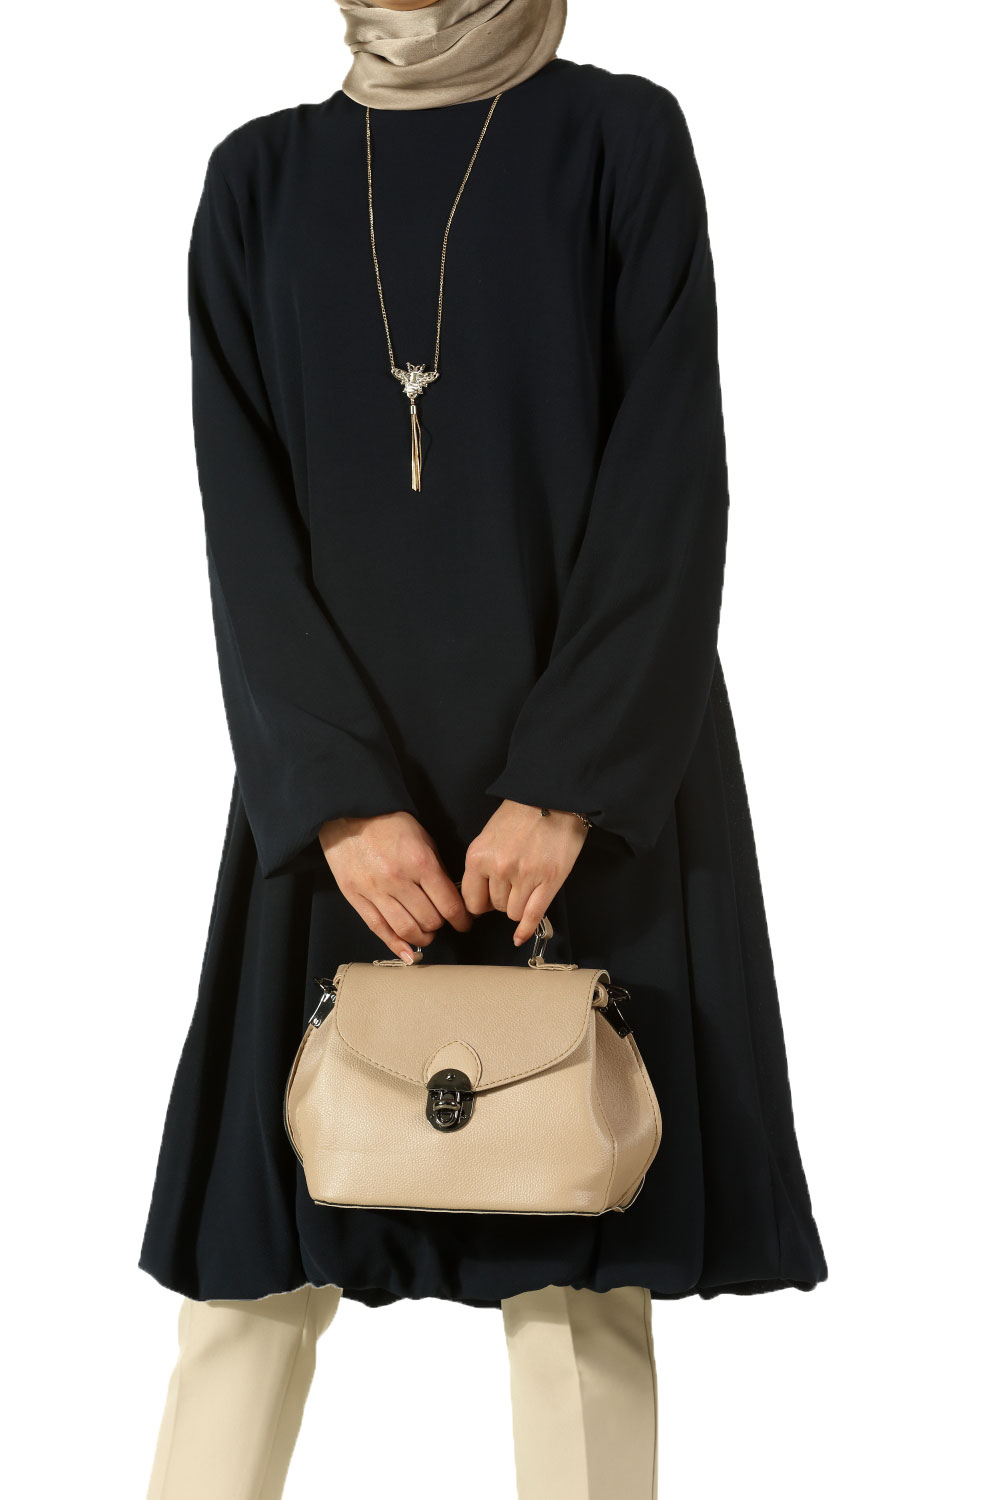 Balloon Tunic with Necklace